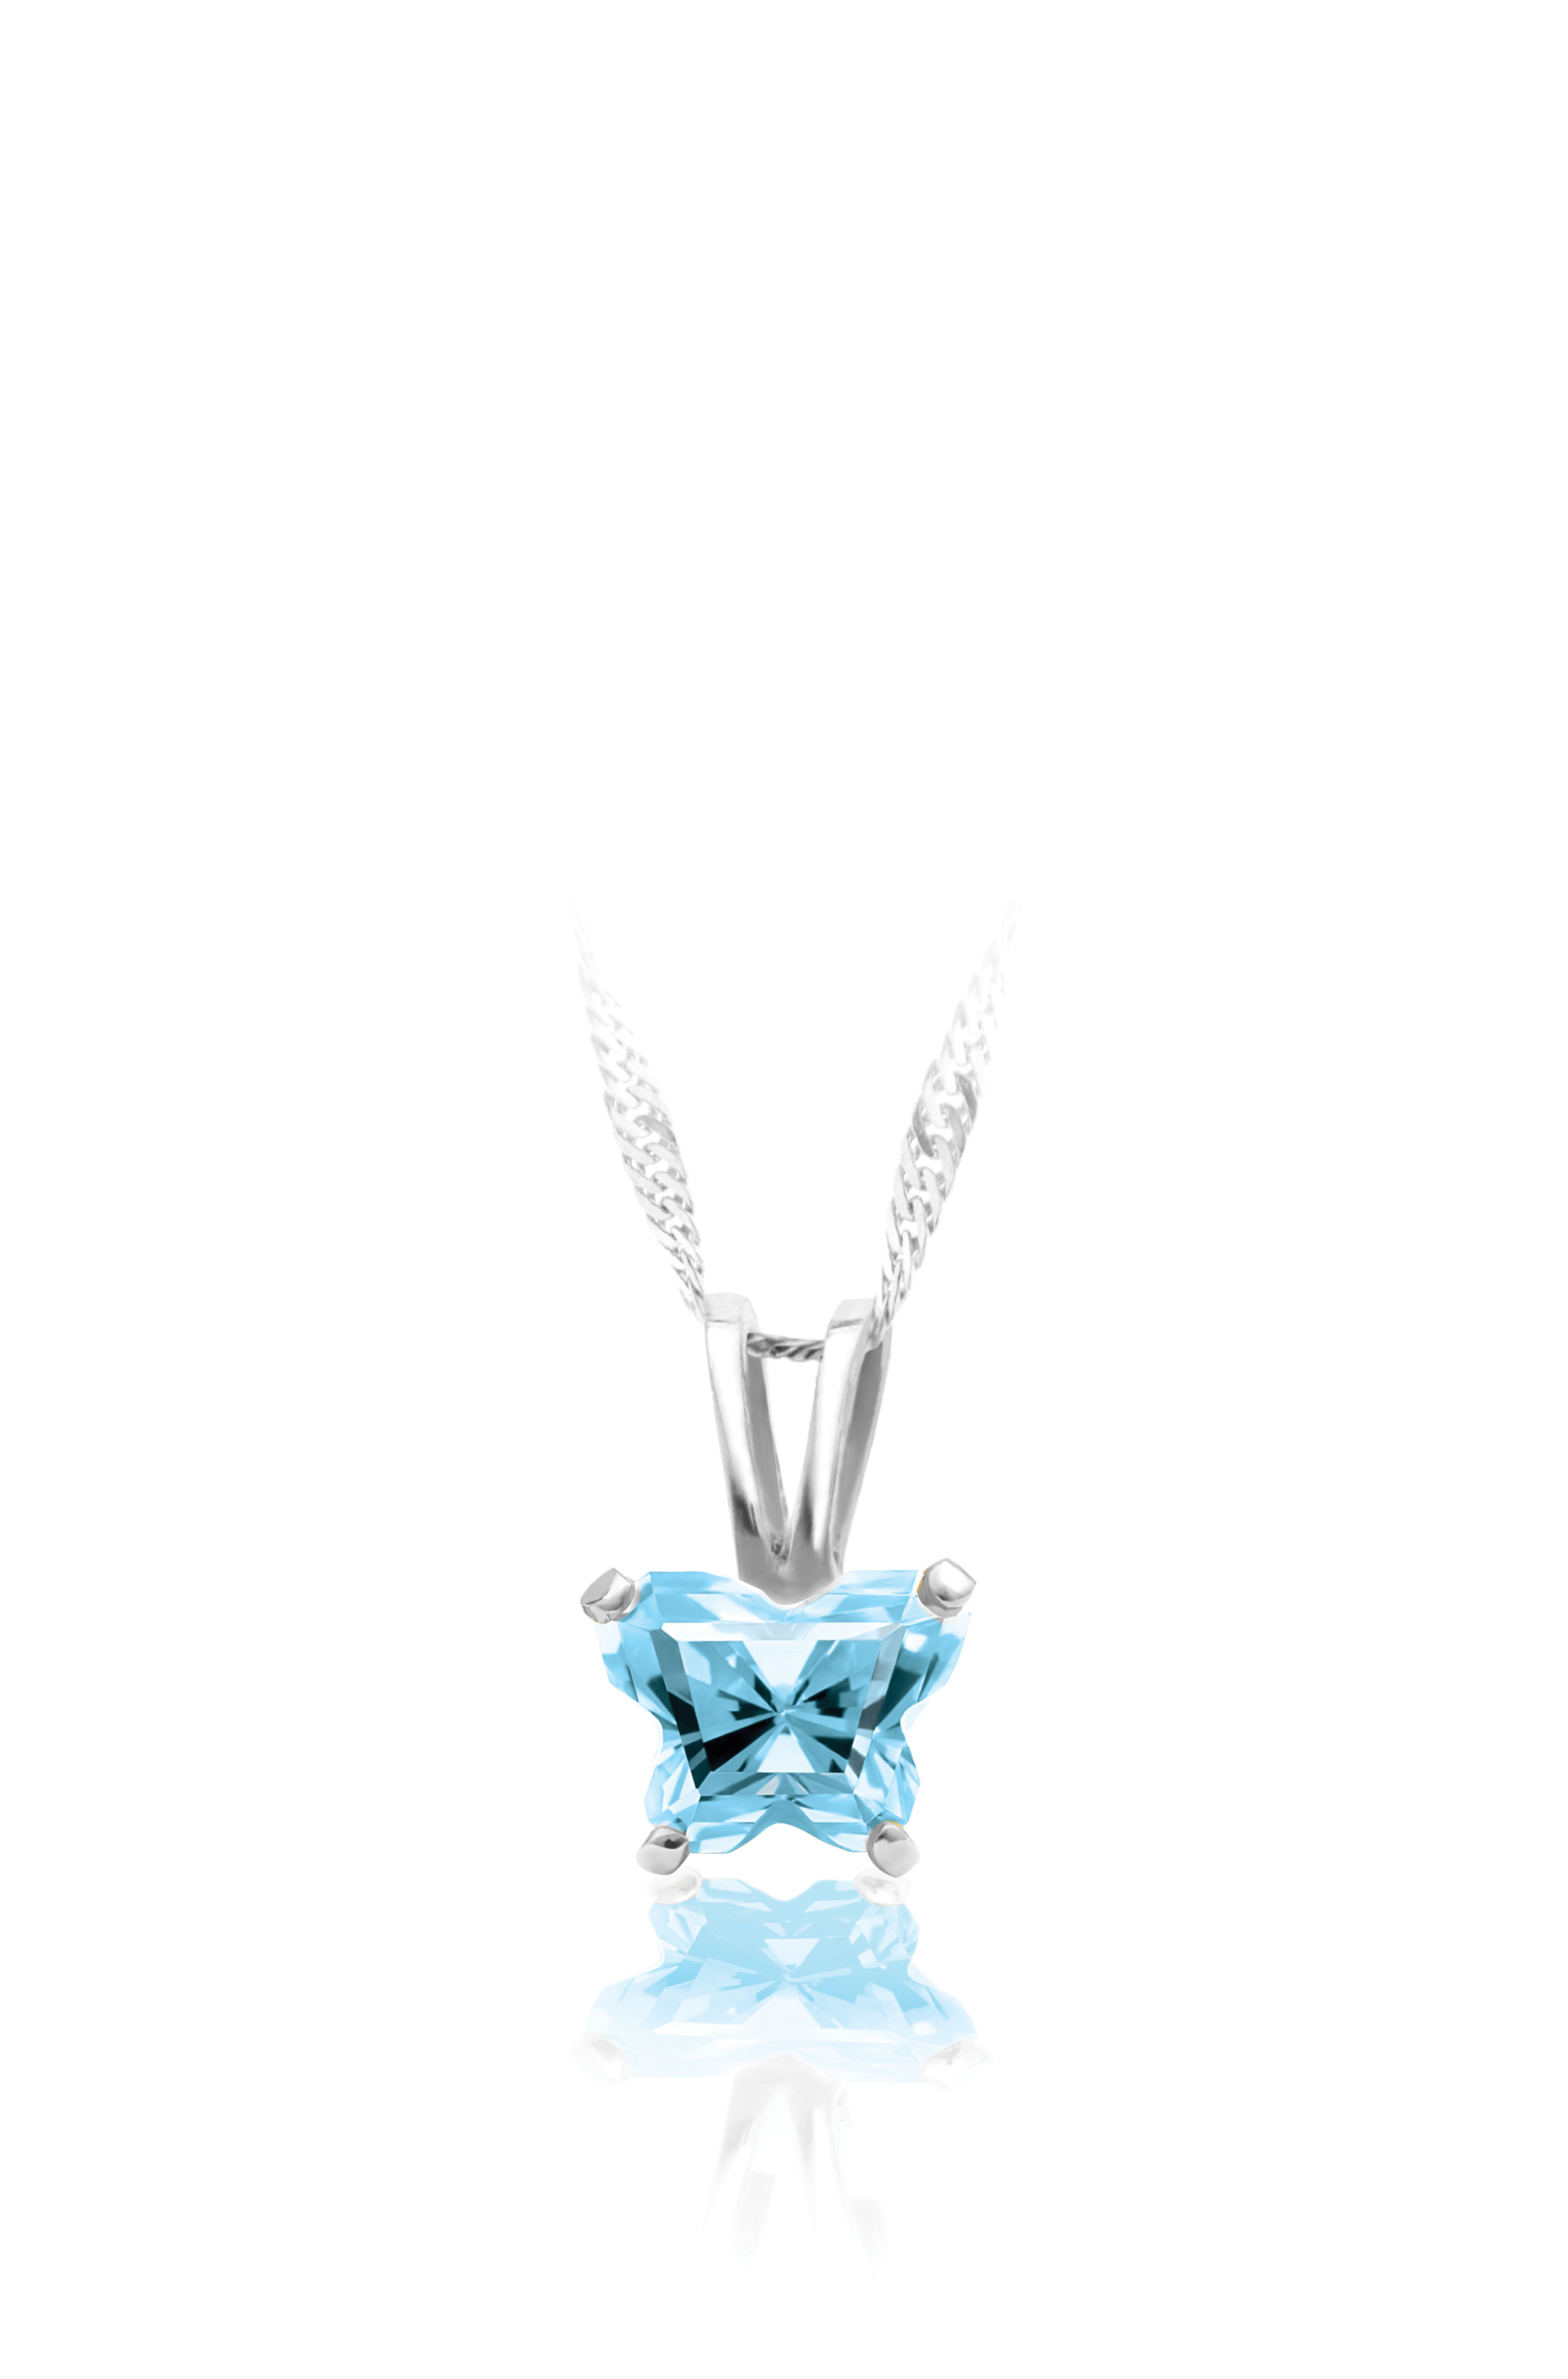 pendant for babies in sterling silver with sky blue cubic zirconia (month of March) - Chain included